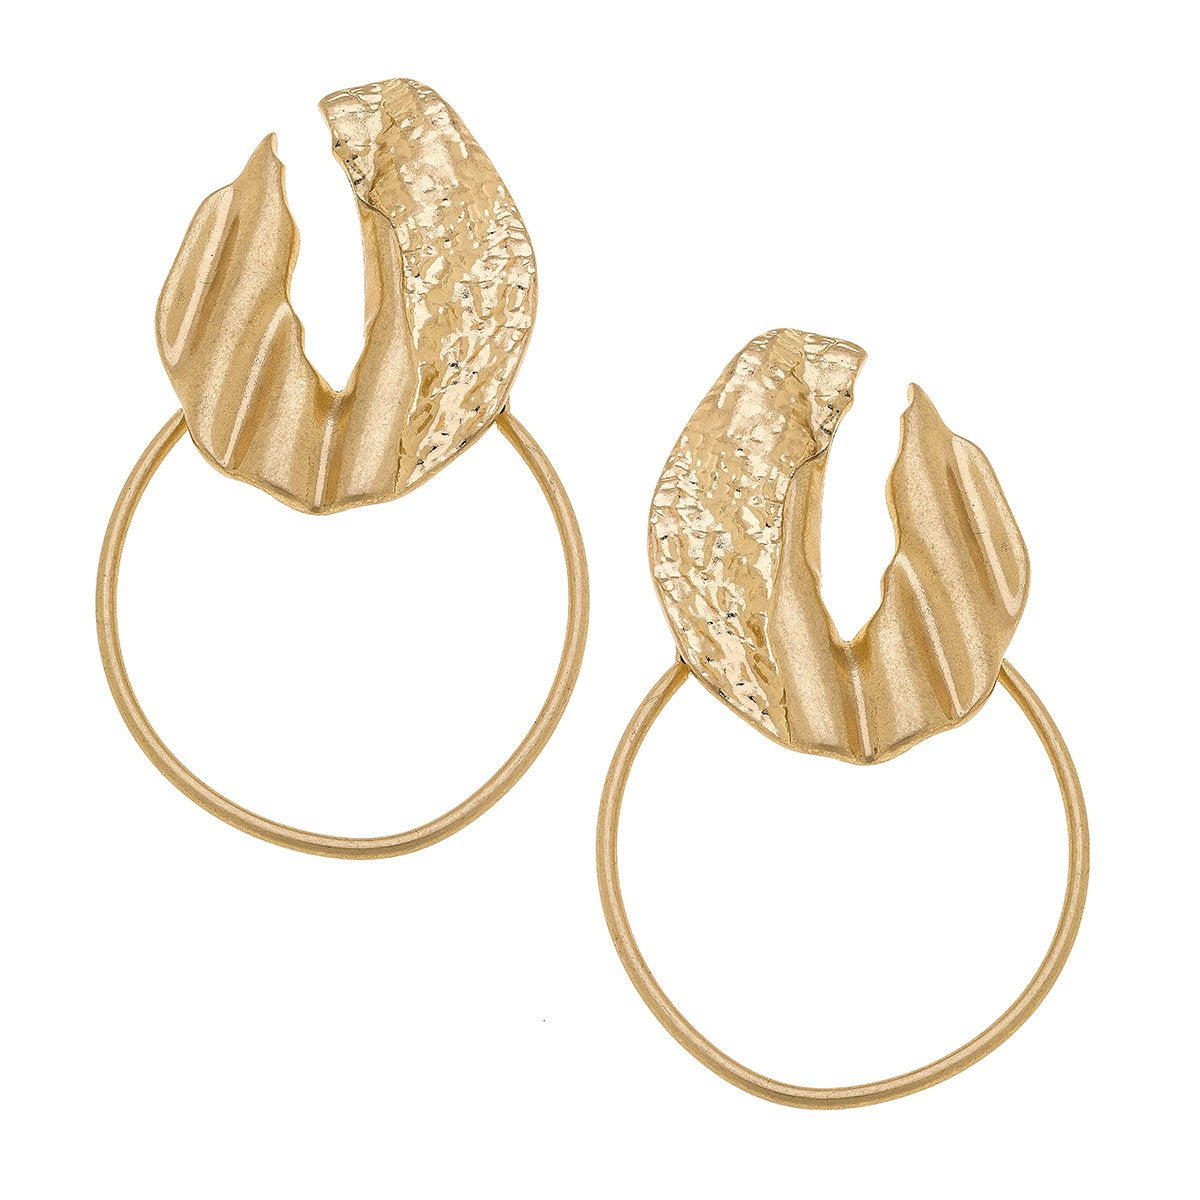 Berlin Statement Earrings In Textured Worn Gold